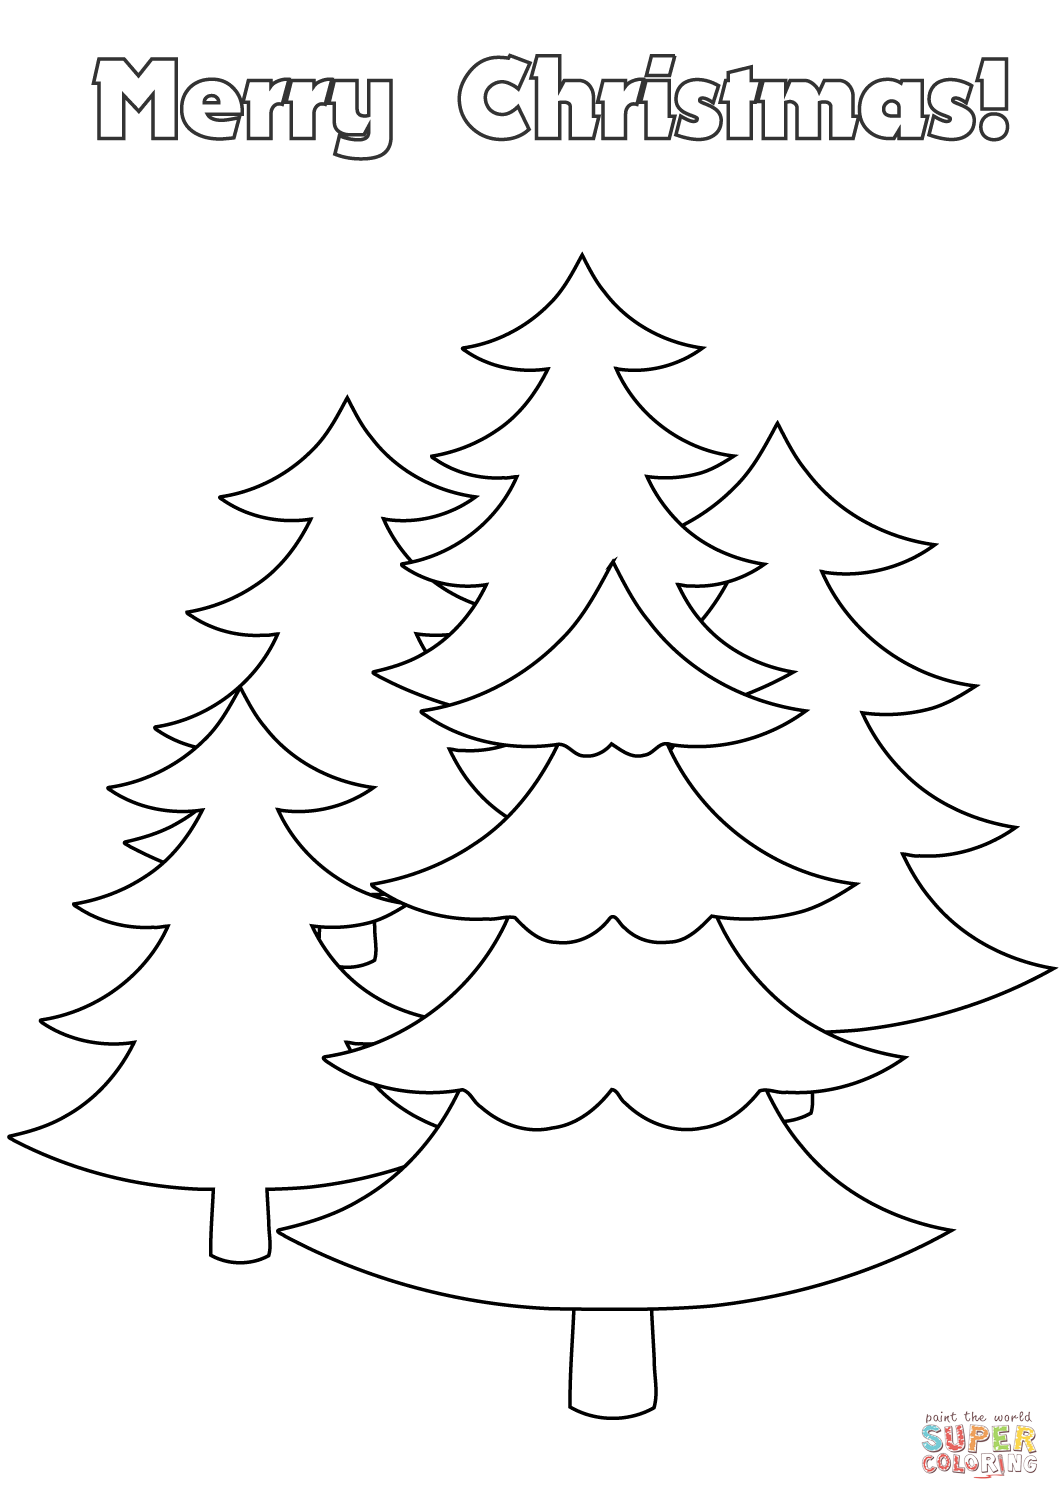 Merry Christmas Card With Trees Coloring Page